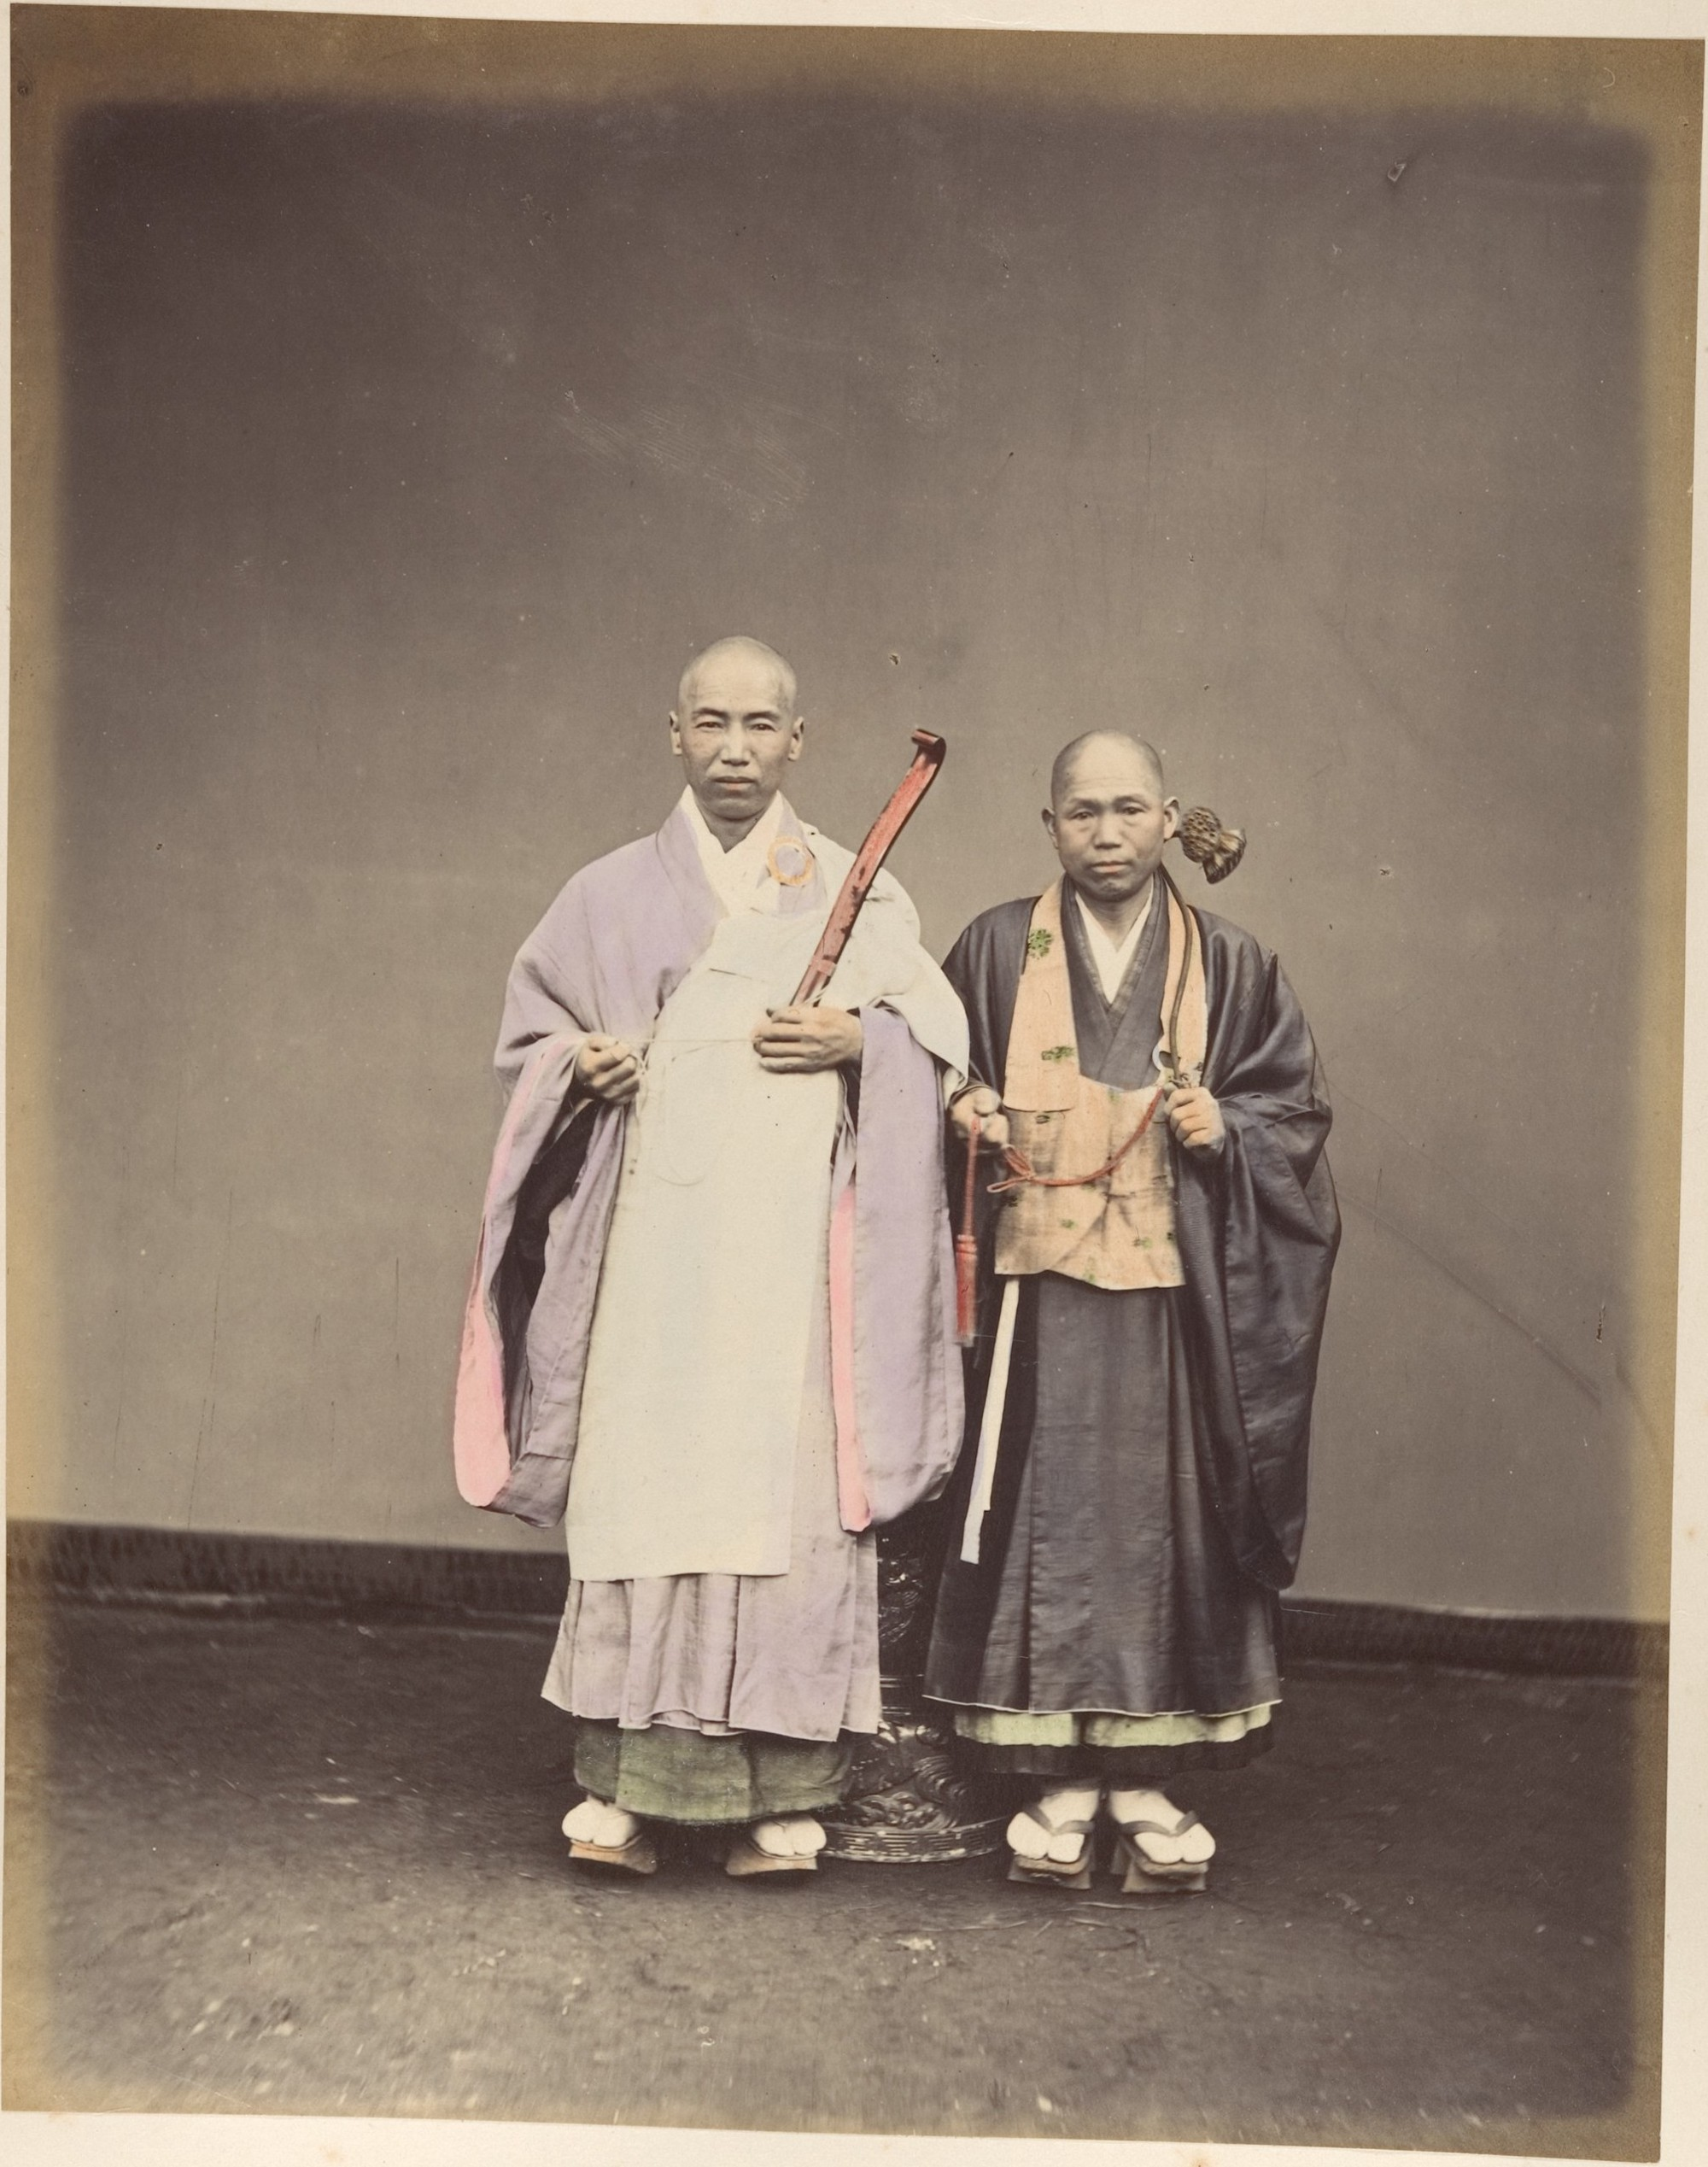 Hand-tinted photographs capture Japan on the brink of modernization